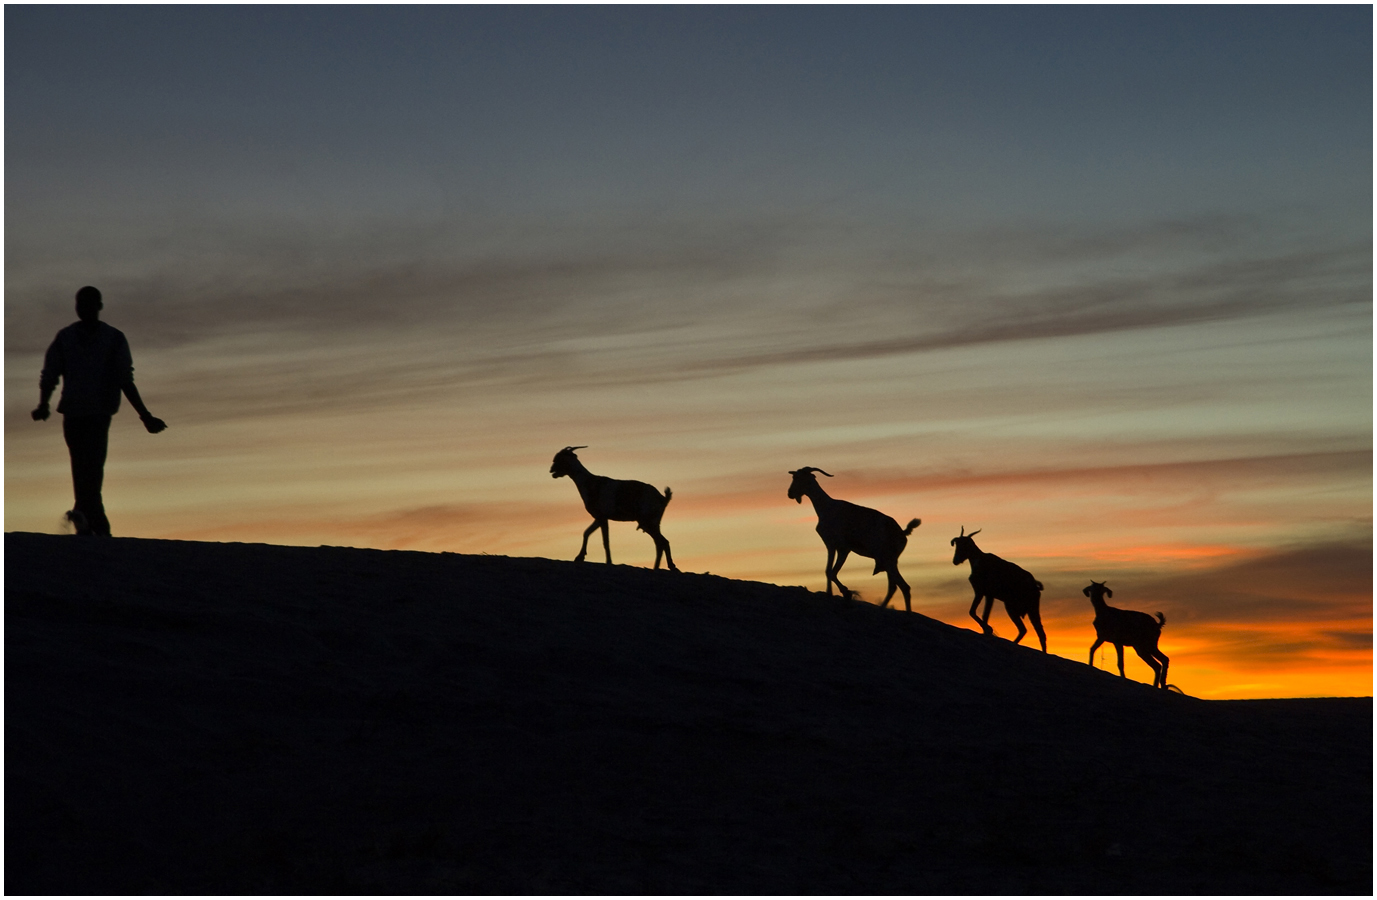 Sunset silhouette of goats and goatherd on sand dune, Sahara desert – by Alice Mutasa